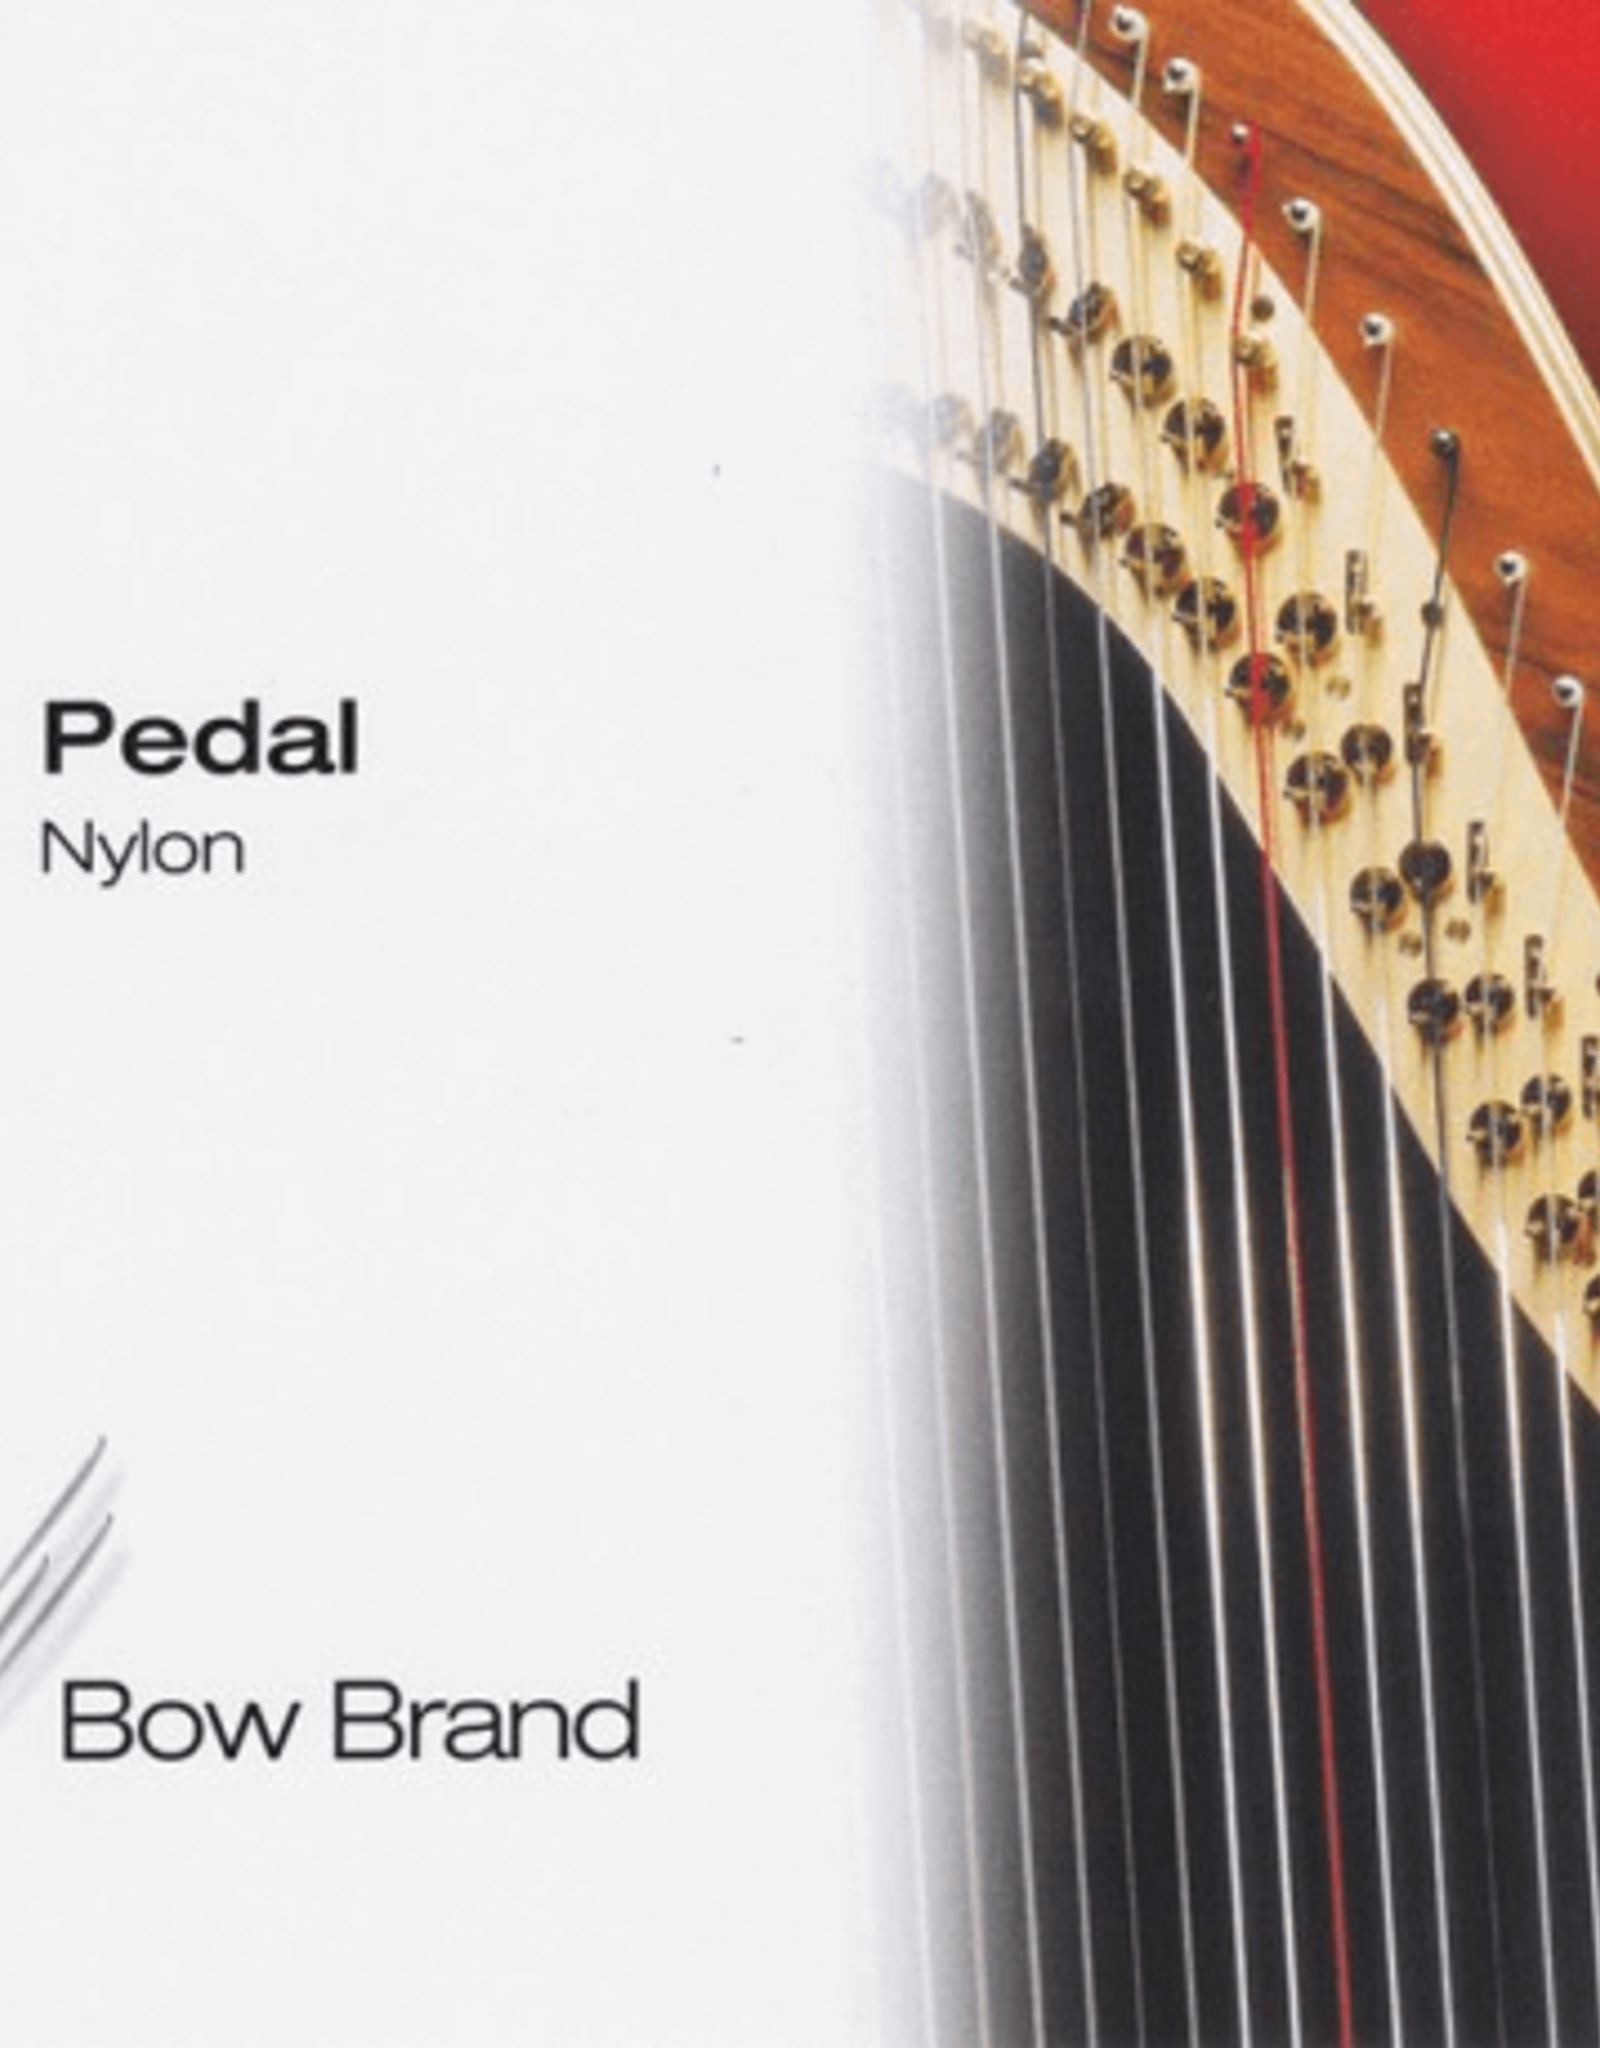 BOW BRAND  pedaal nylon - pedal NYLON 10/2 do